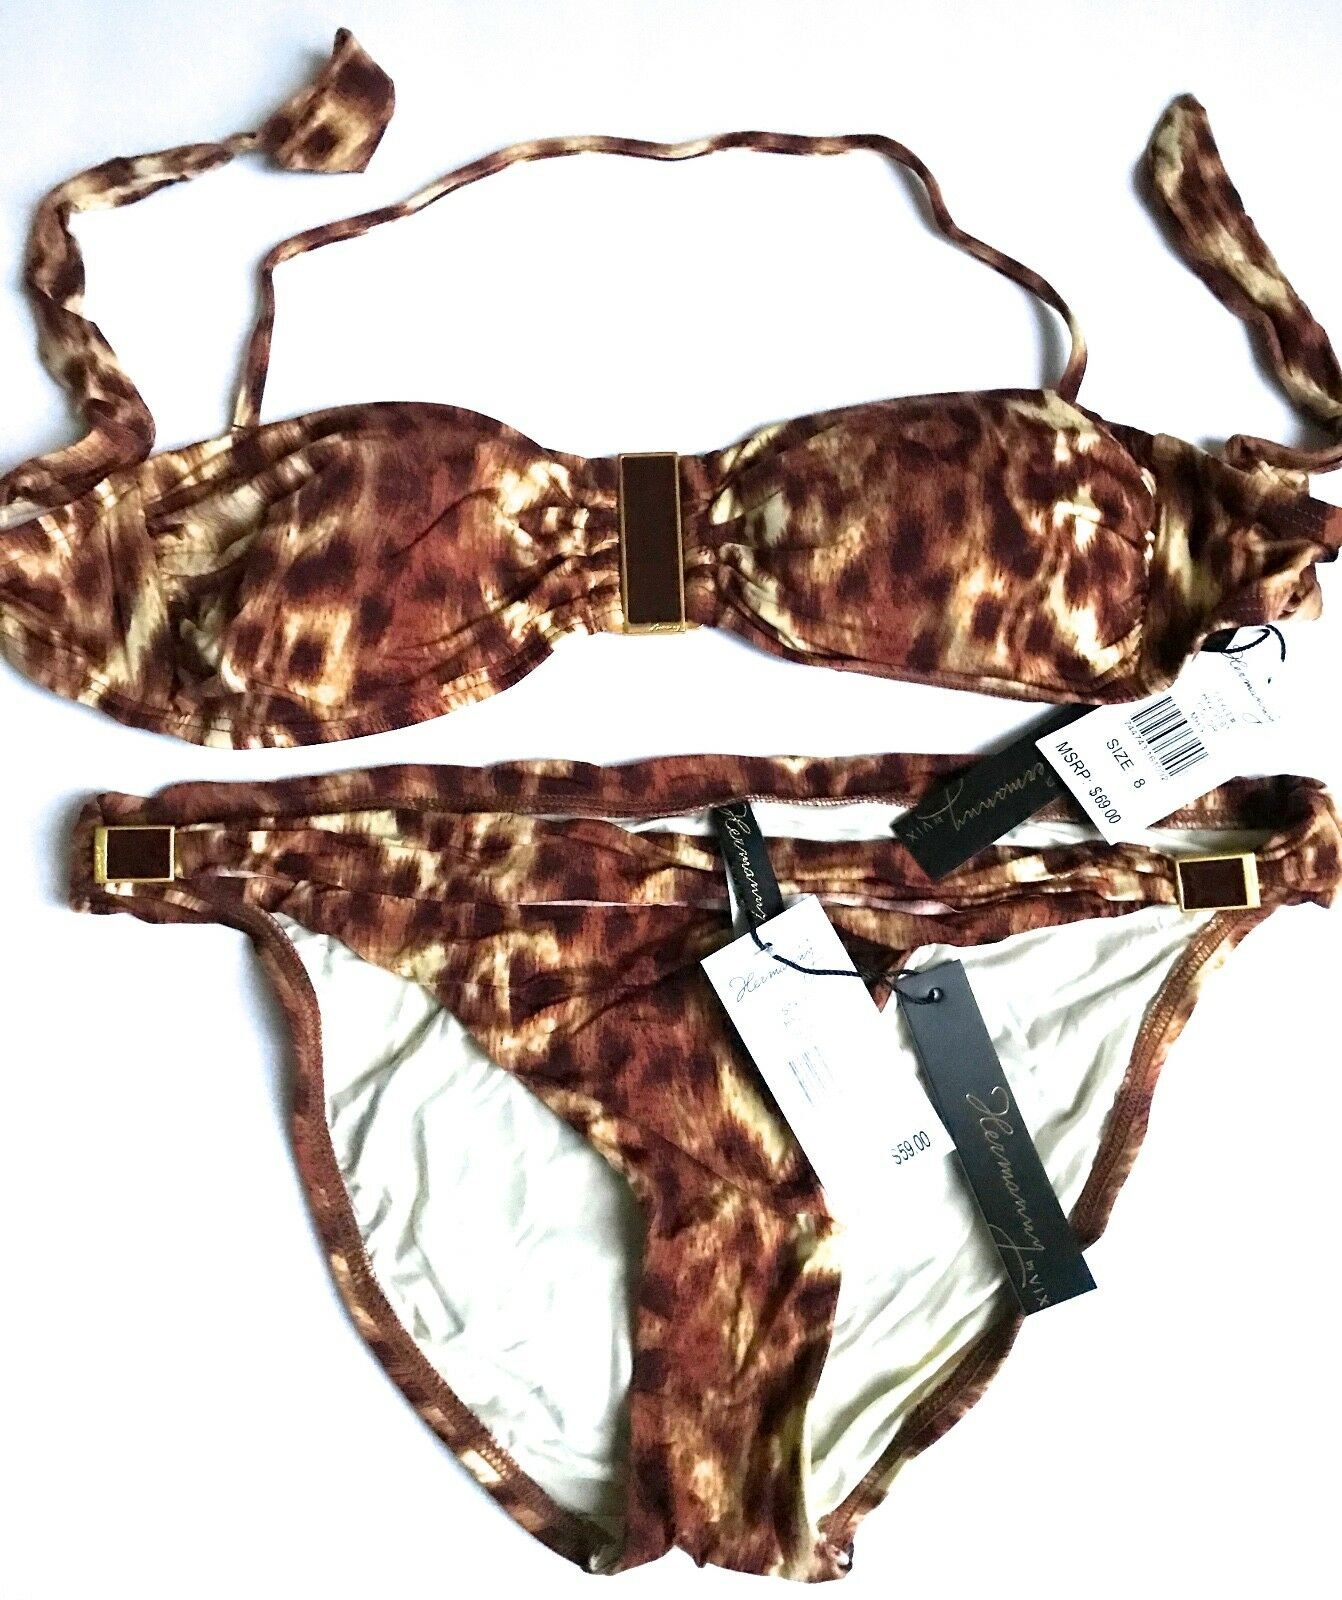 BRAND NWT  128.00 HERMANNY BY VIX 2 PC SWIMSUIT BROWN ANIMAL PRINT SIZE 8